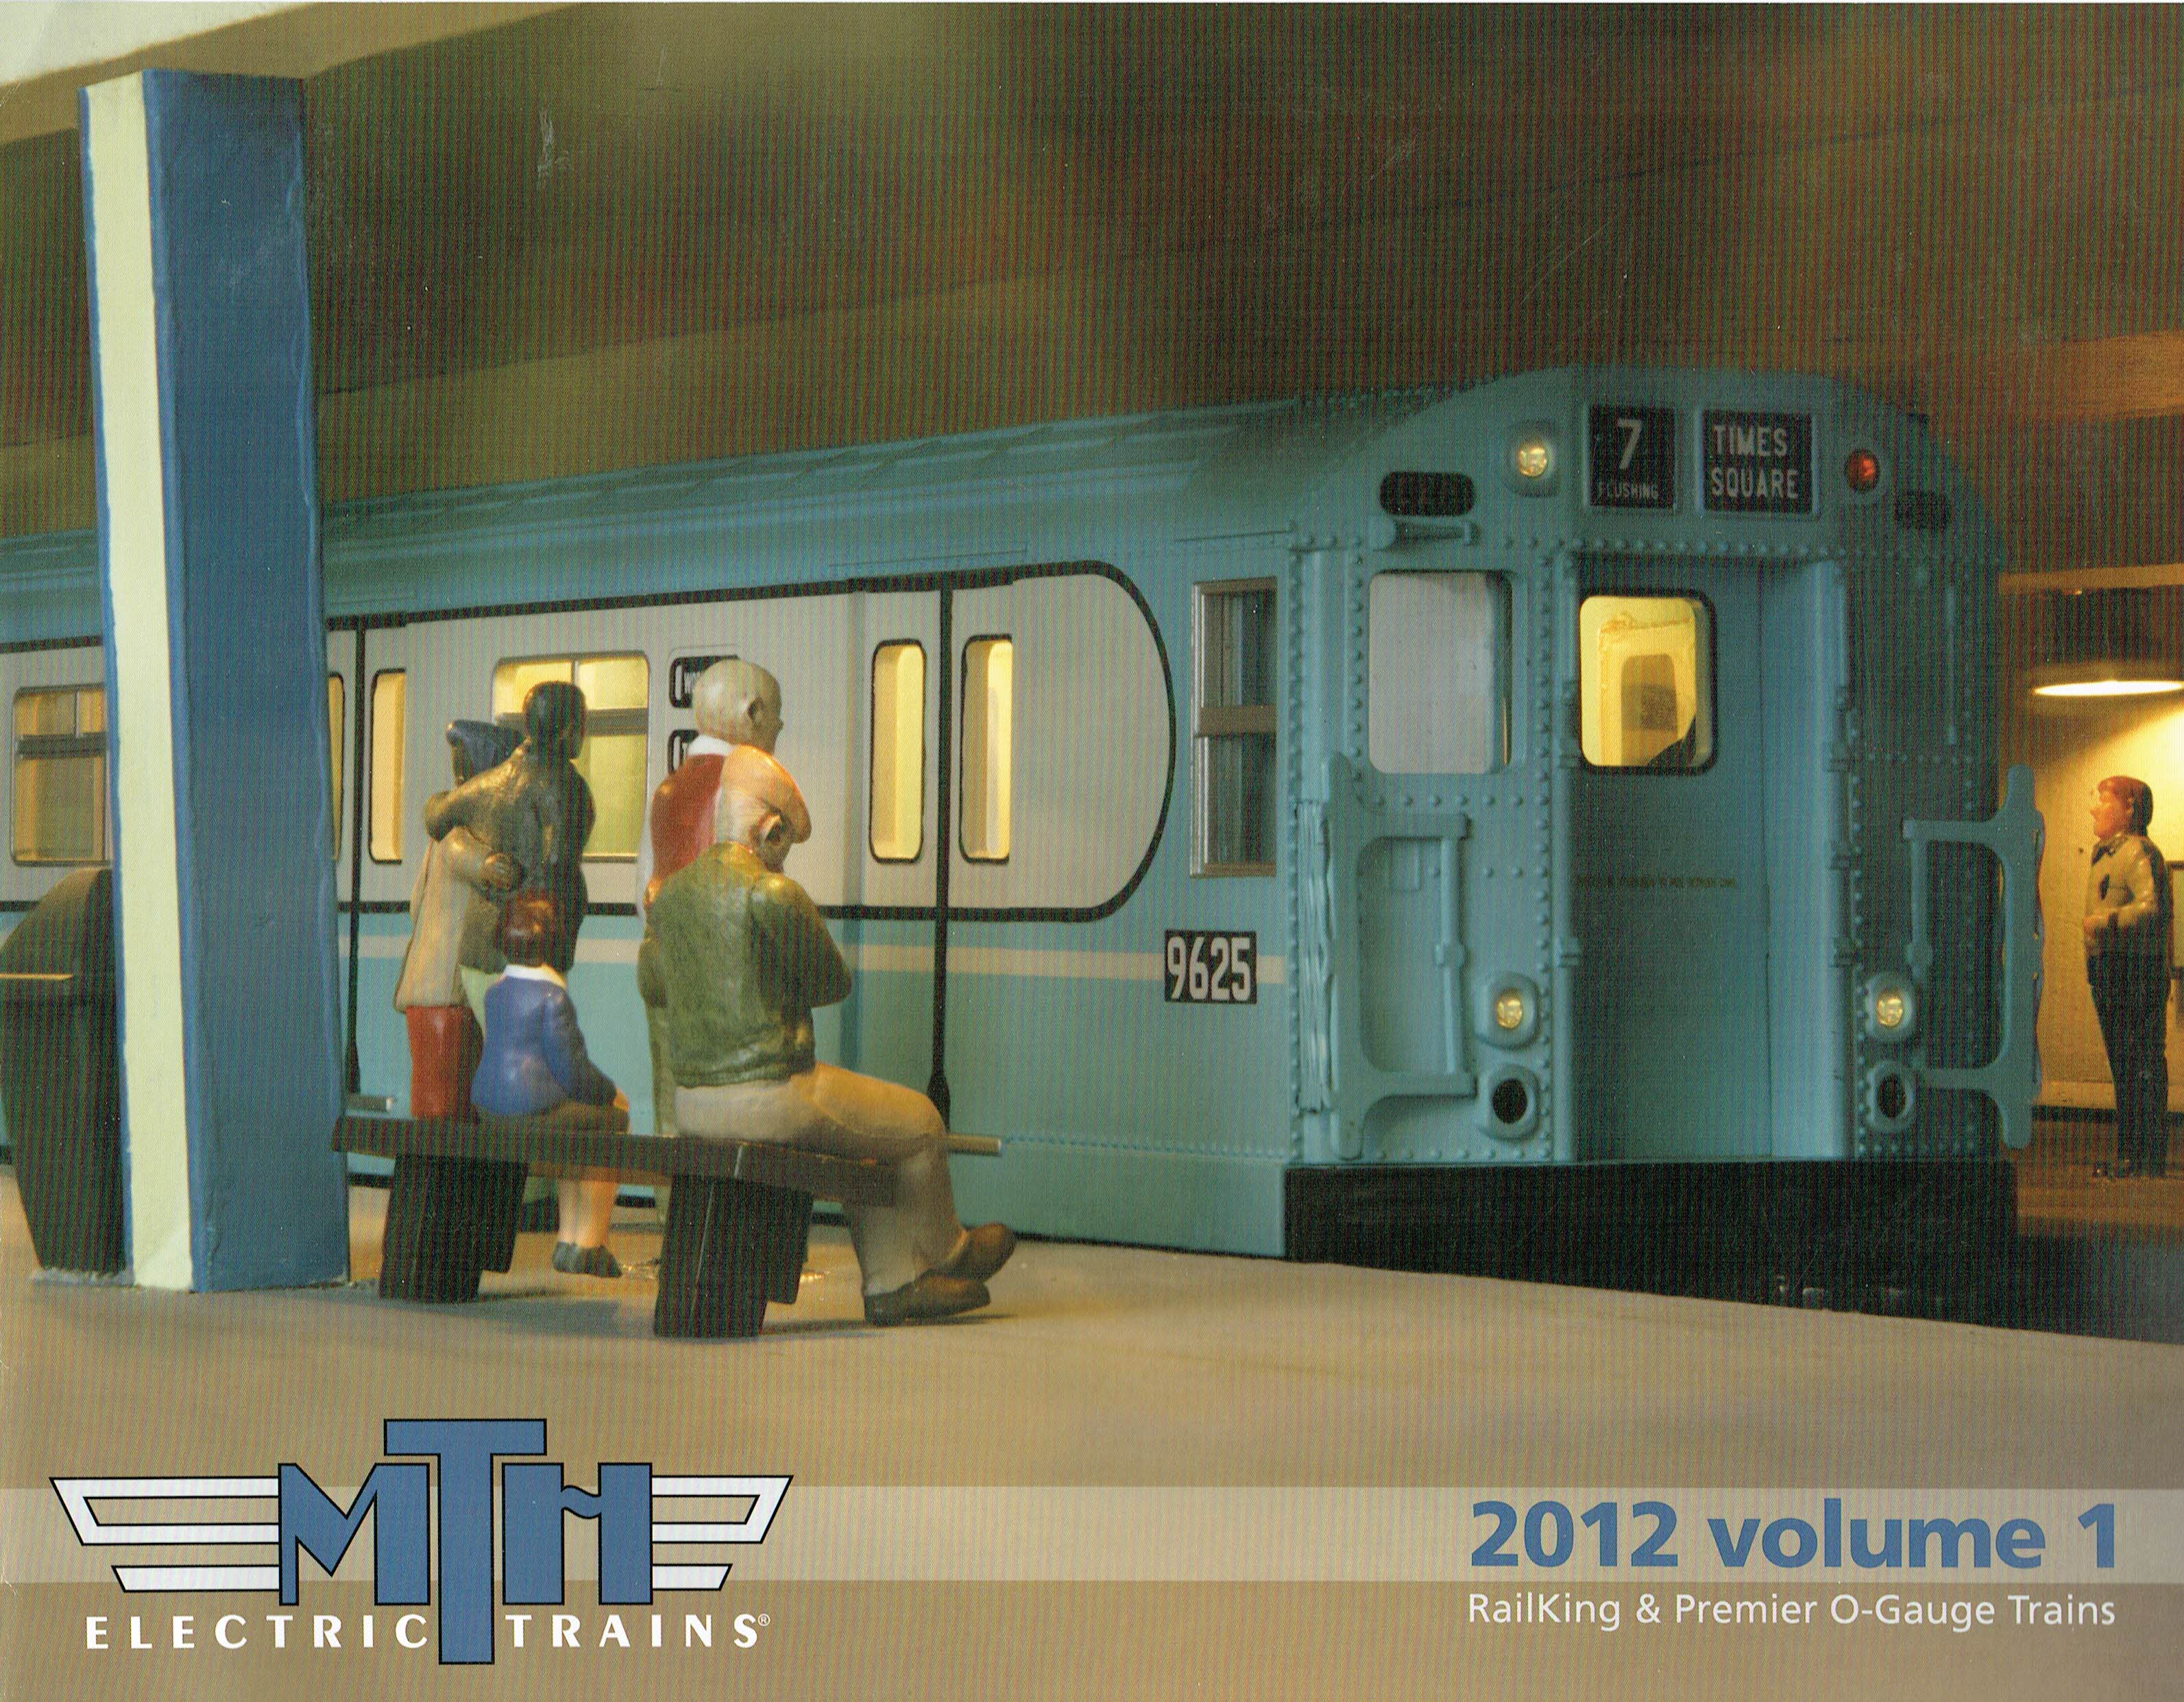 MTH 2012 Volume 1 Catalog image